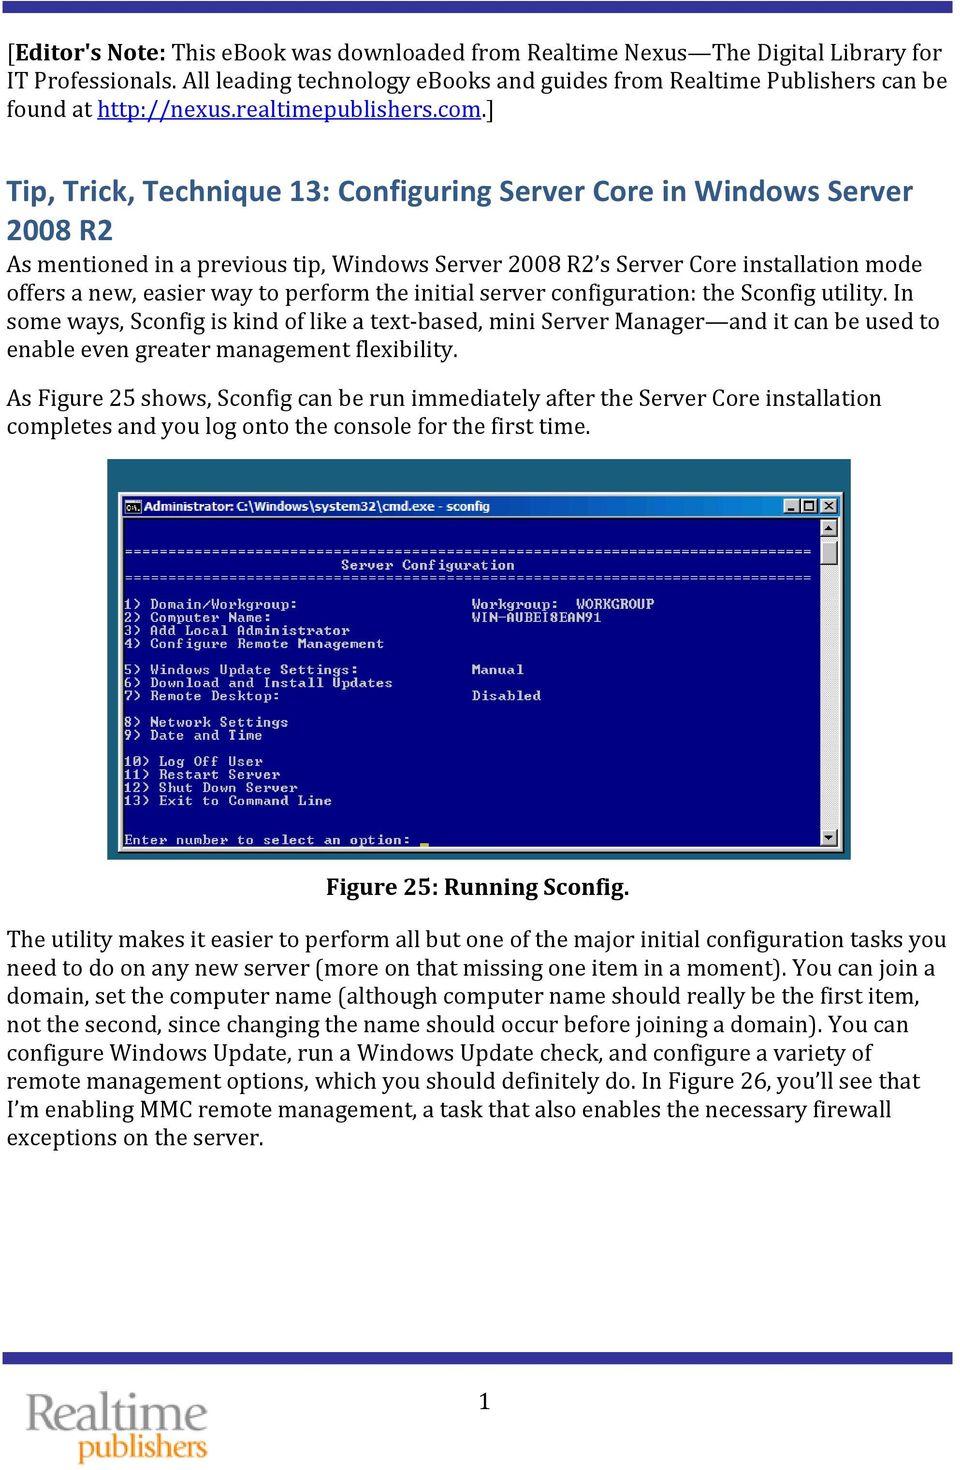 ] Tip, Trick, Technique 13: Configuring Server Core in Windows Server 2008 R2 As mentioned in a previous tip, Windows Server 2008 R2 s Server Core installation mode offers a new, easier way to